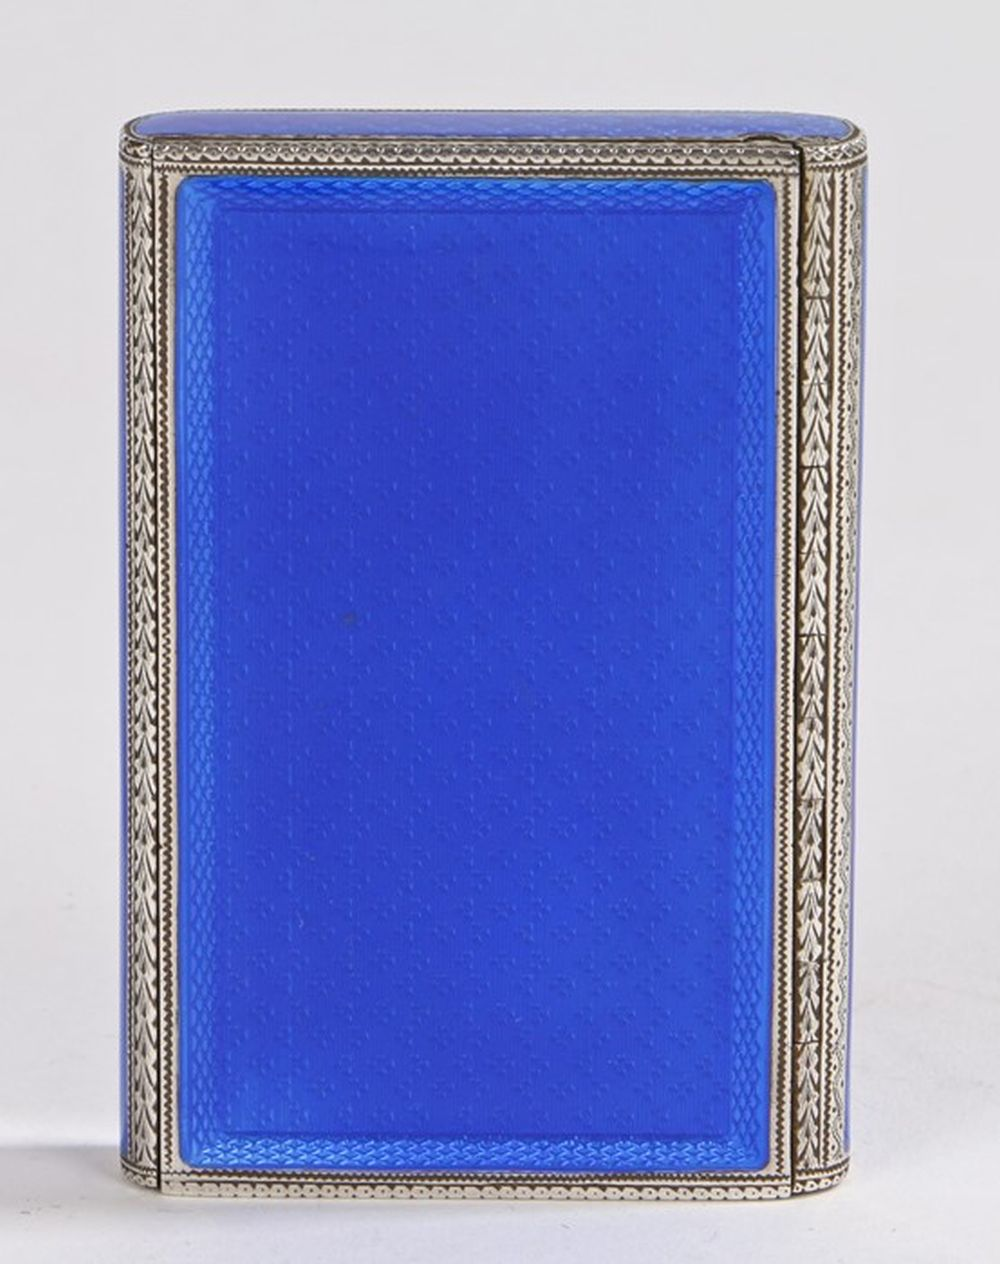 Continental silver guilloche enamel box, with blue enamel exterior, sliding mechanism opening to rev